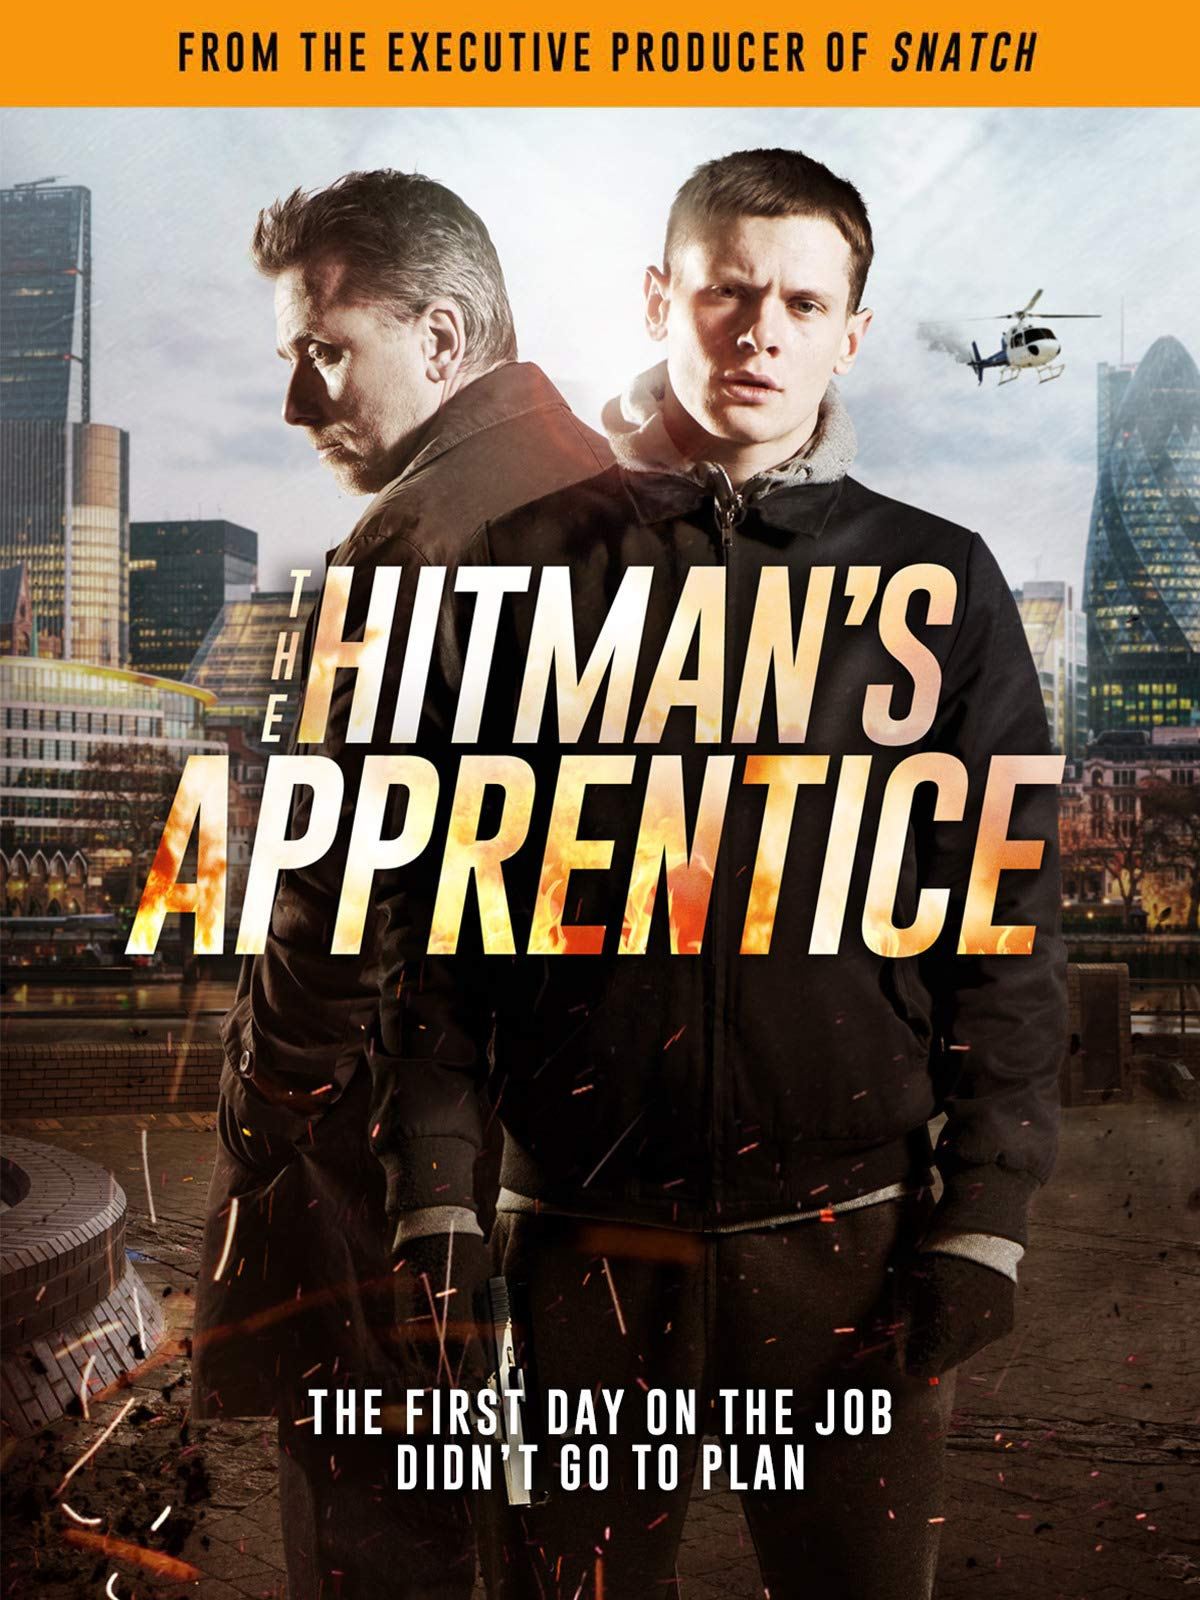 The Hitman's Apprentice